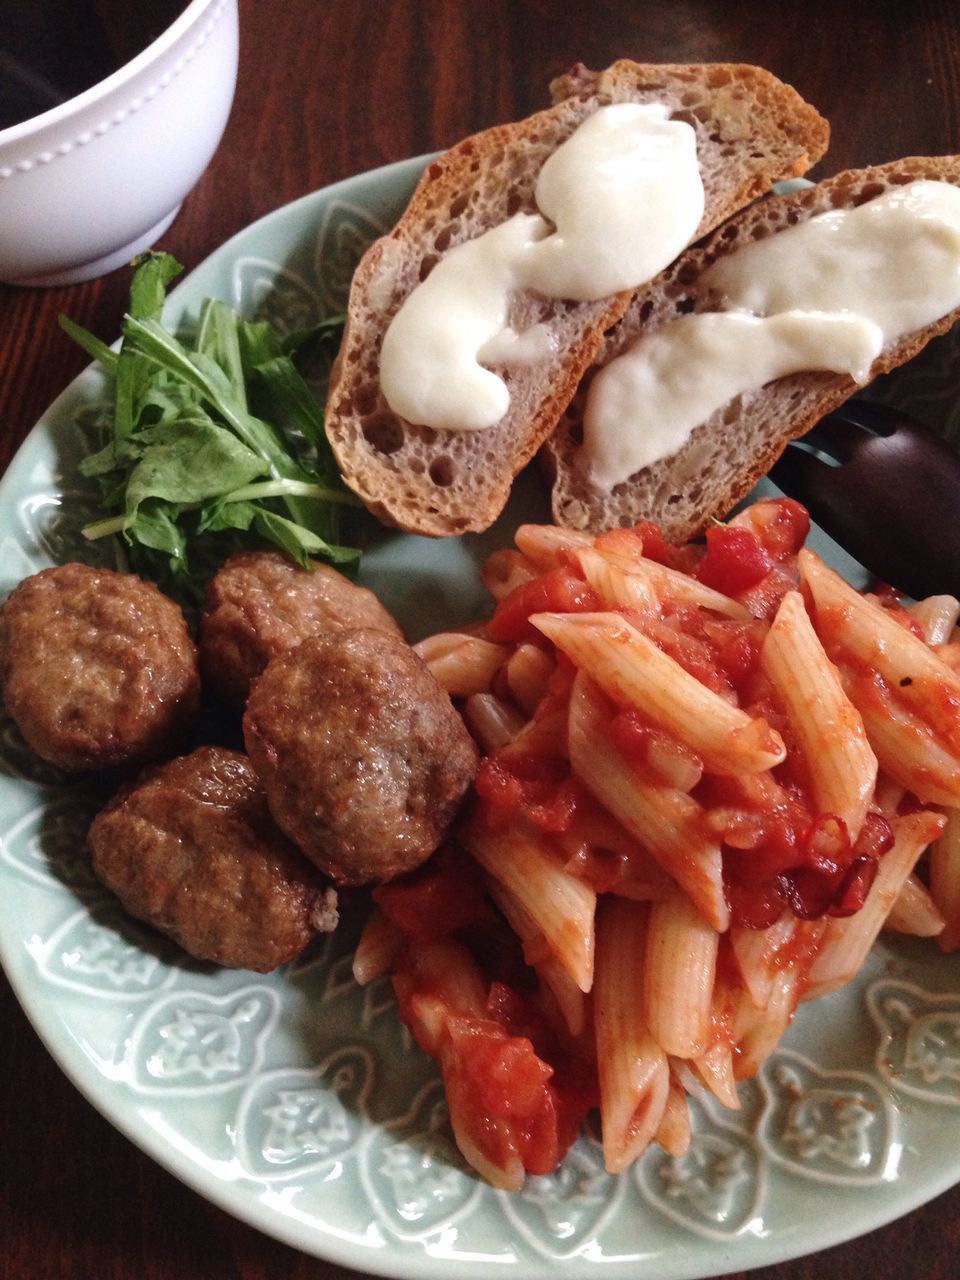 food and drink, food, plate, freshness, ready-to-eat, indoors, serving size, no people, close-up, meat, garnish, healthy eating, italian food, day